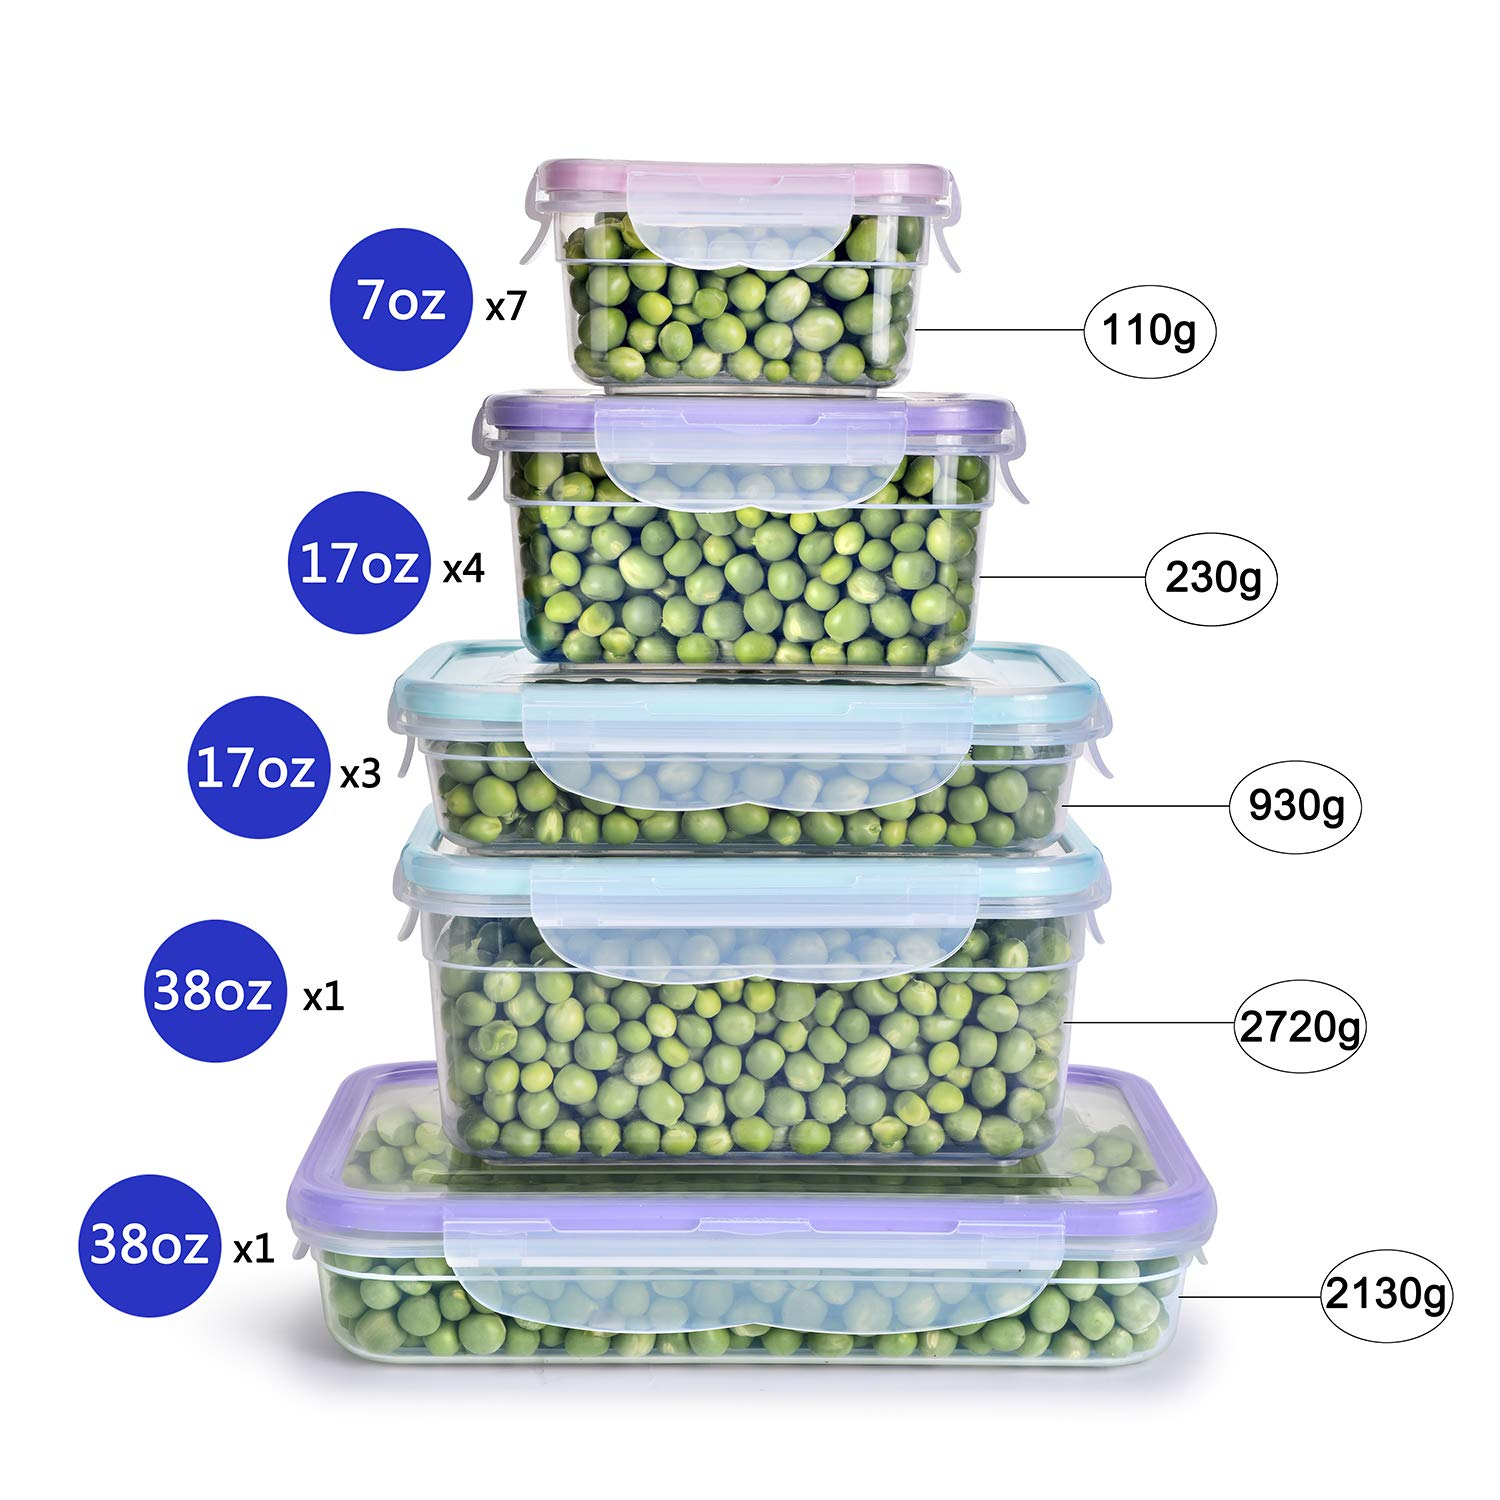 [16 Pack] Food Storage Containers with Lids, Plastic Food Containers with Lids, Airtight Storage Container Sets for Healthy Diet, Vegetables, Snack & Fruit (Small&Large Size), BPA Free & Leakproof by Bayco (Image #2)